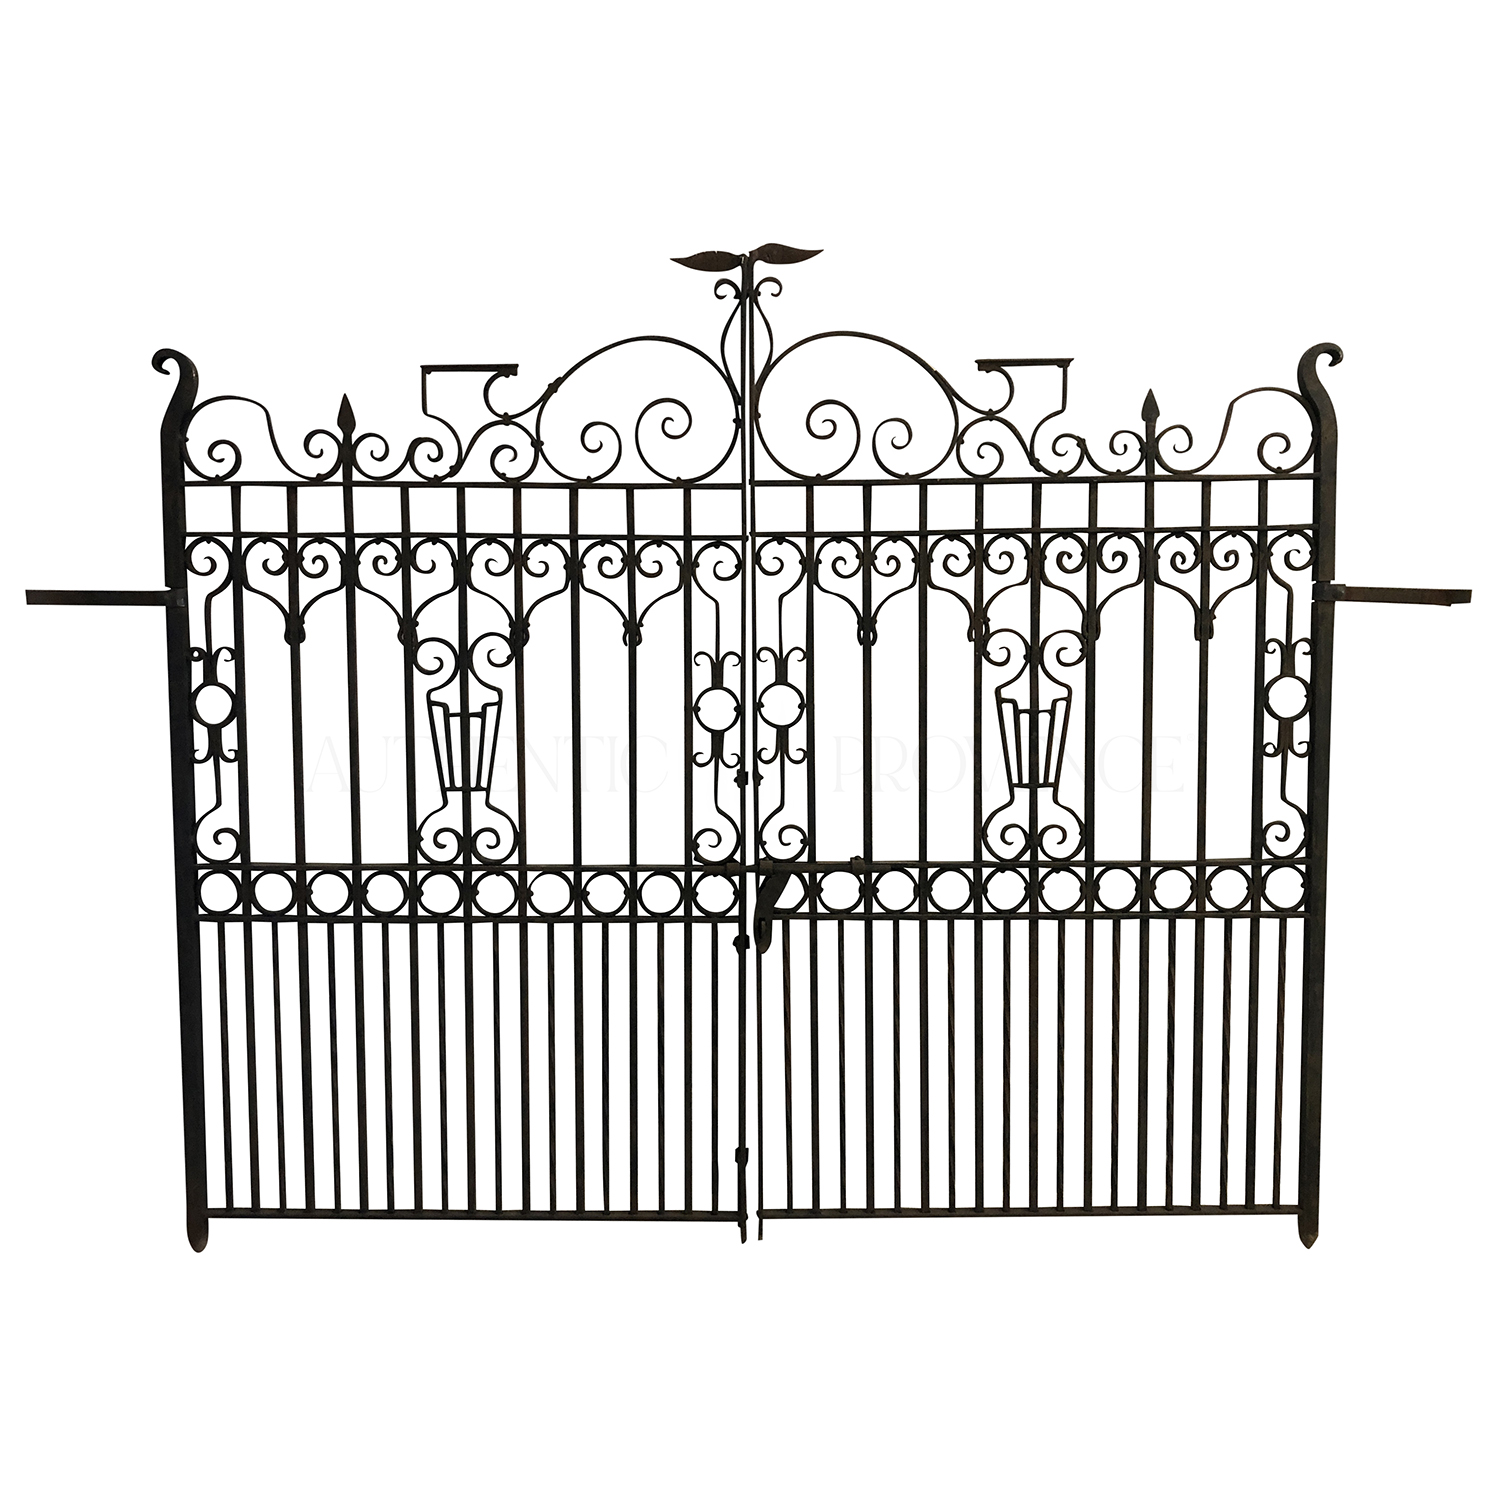 A 19th Century heavy double sided wrought iron entrance gate in the typical French décor